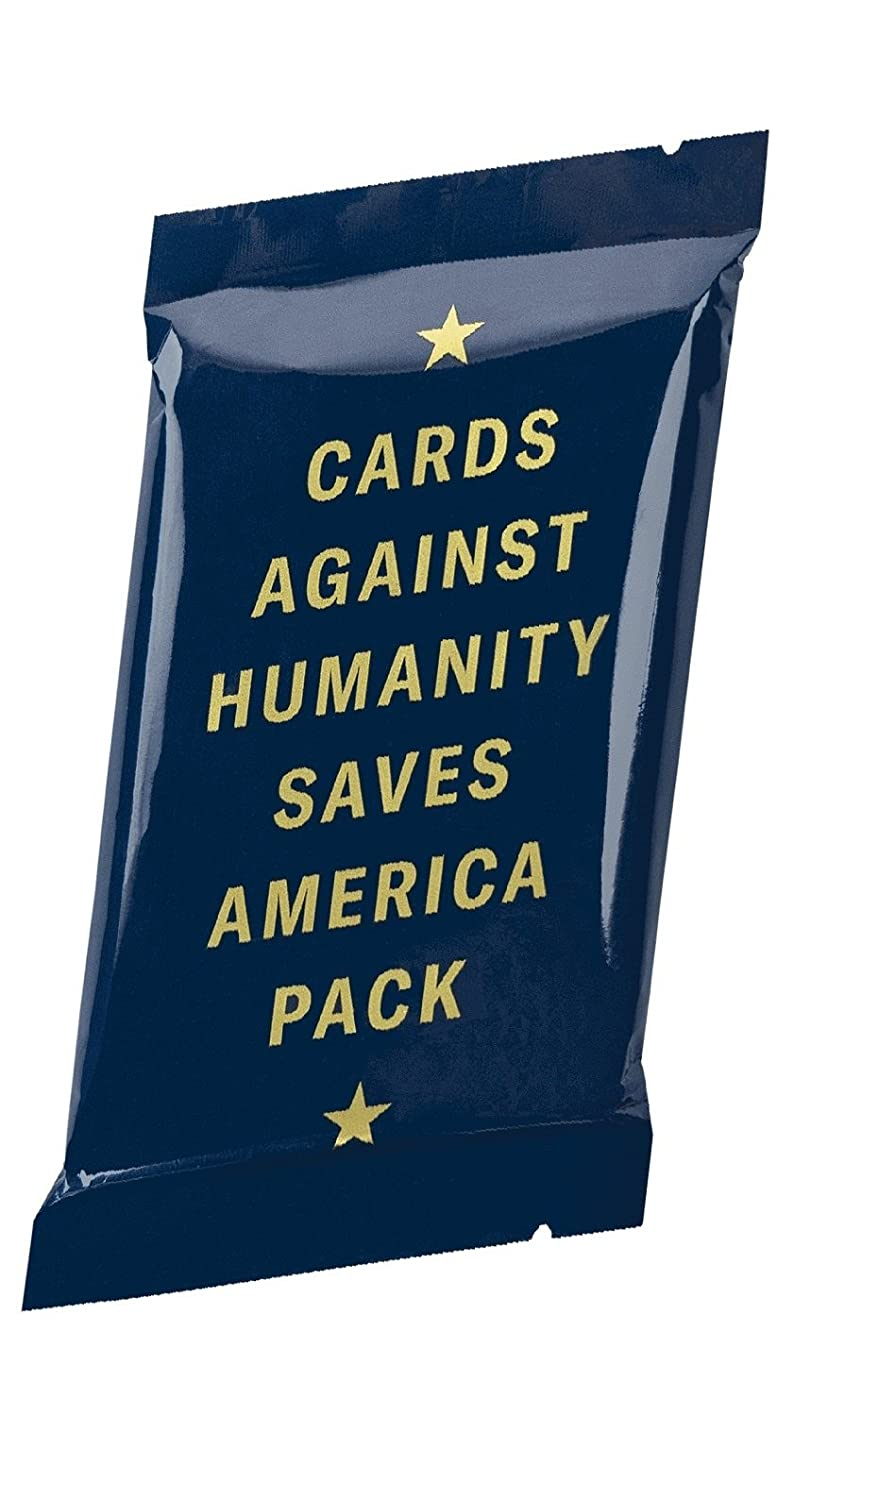 Cards Against /& Humanity Saves America Pack